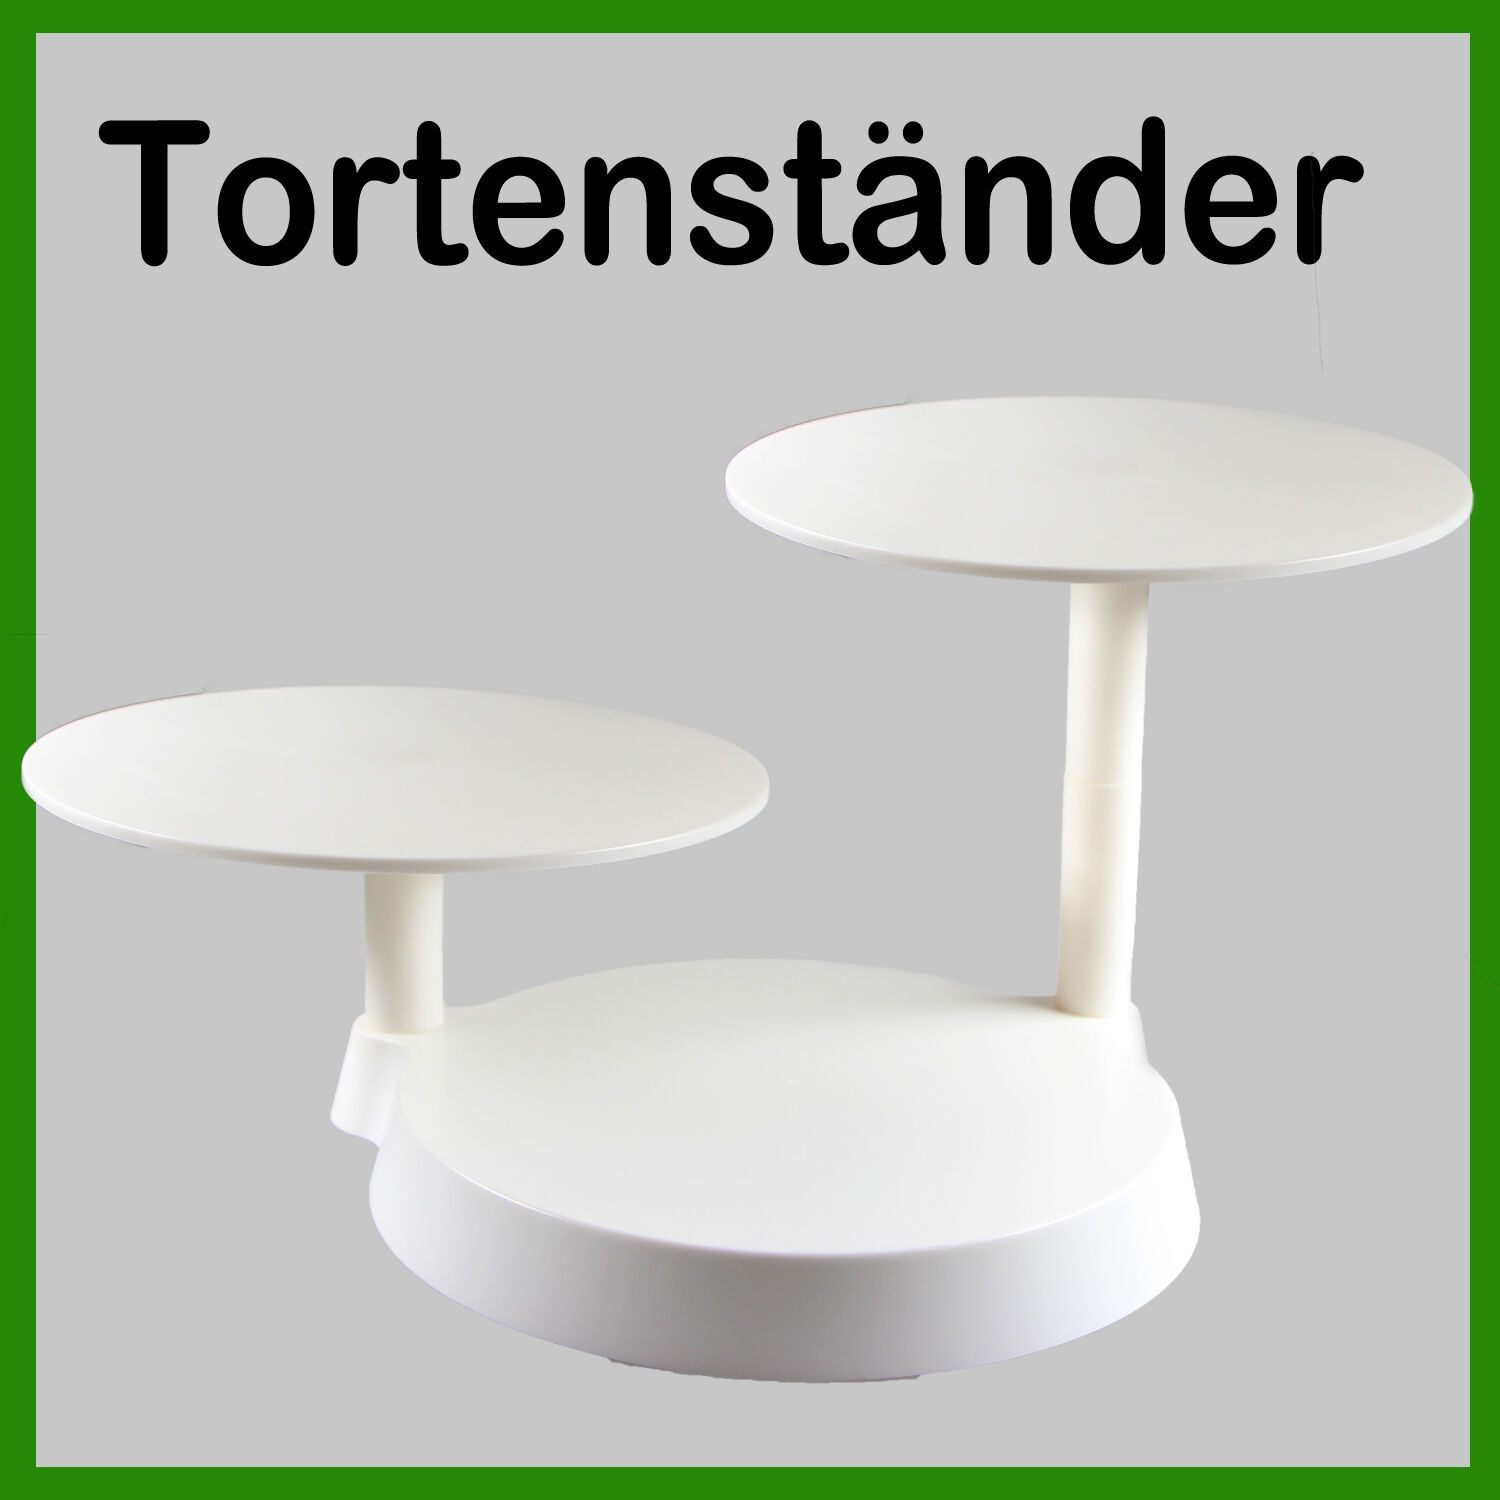 tortenst nder etagere 3 st ckig hochzeitstorte deko gestell ausstecher fondant eur 12 59. Black Bedroom Furniture Sets. Home Design Ideas